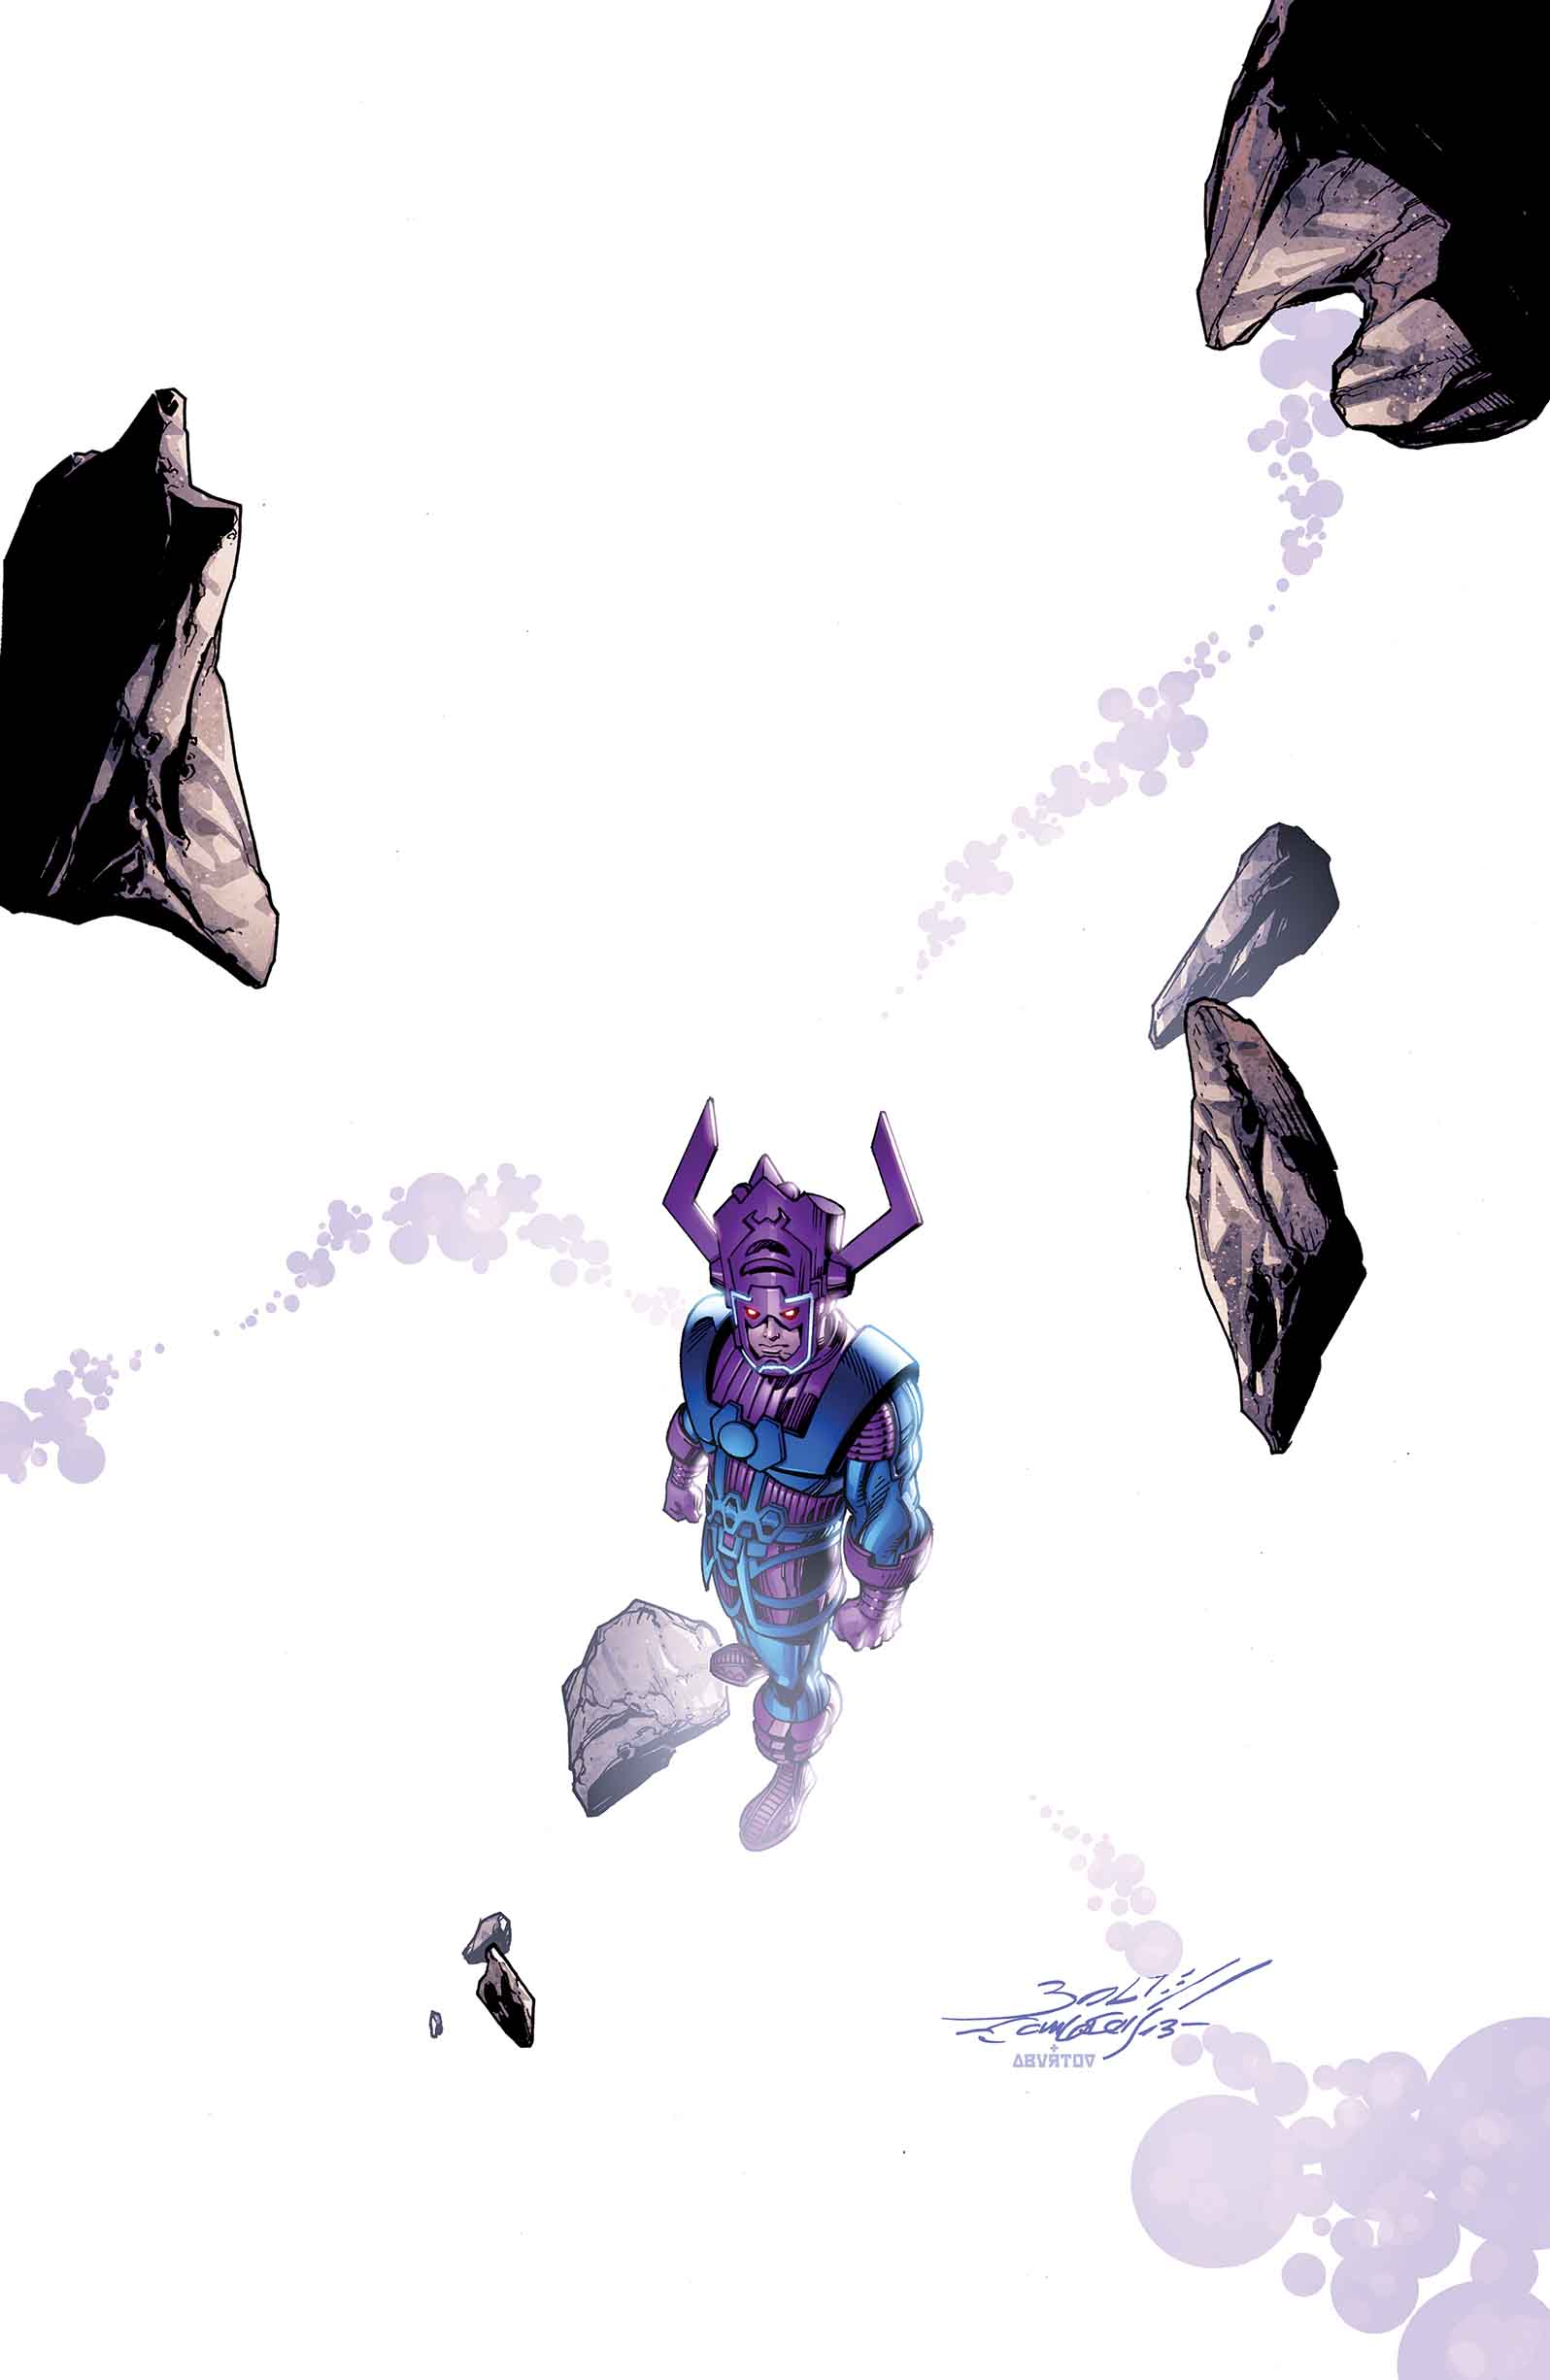 The Ultimate Universe Will Never Be the Same After CATACLYSM: THE ULTIMATES' LAST STAND #5!